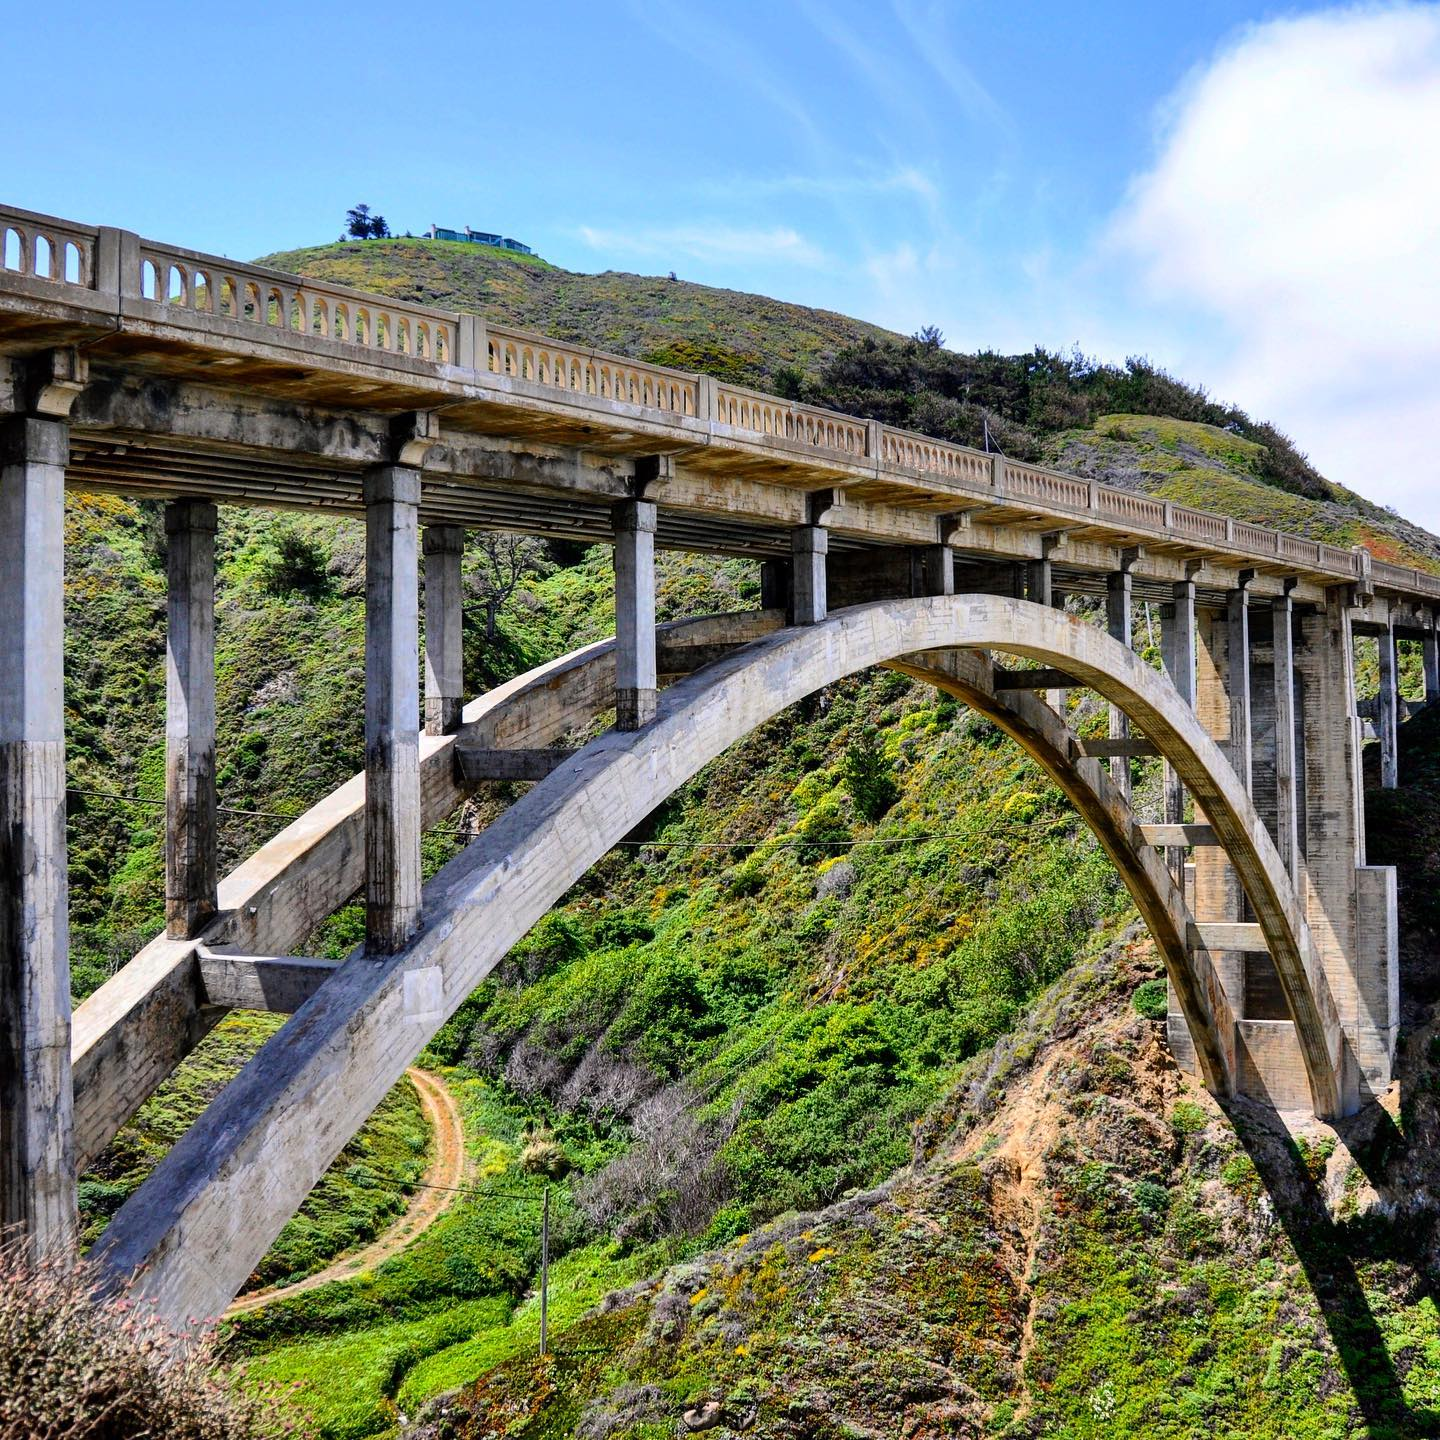 Bixby Creek Bridge, Big Sur, California  For certain one of the most photographed bridges in California. #usa #usatravel #usatraveler #bigsur #bixbybridge #california #californiaroadtrip #roadtripusa #roadtrip #californialove #bridge #bridgephotography #travelphotography #travelgram #travelpics #reisefotografie #reiseblogger #reiseblog #artdeco #architecture #architecturephotography #travelblog #travelblogger #usablogger #beautifulplaces #beautifulnature #beautifuldestinations #justbeautiful